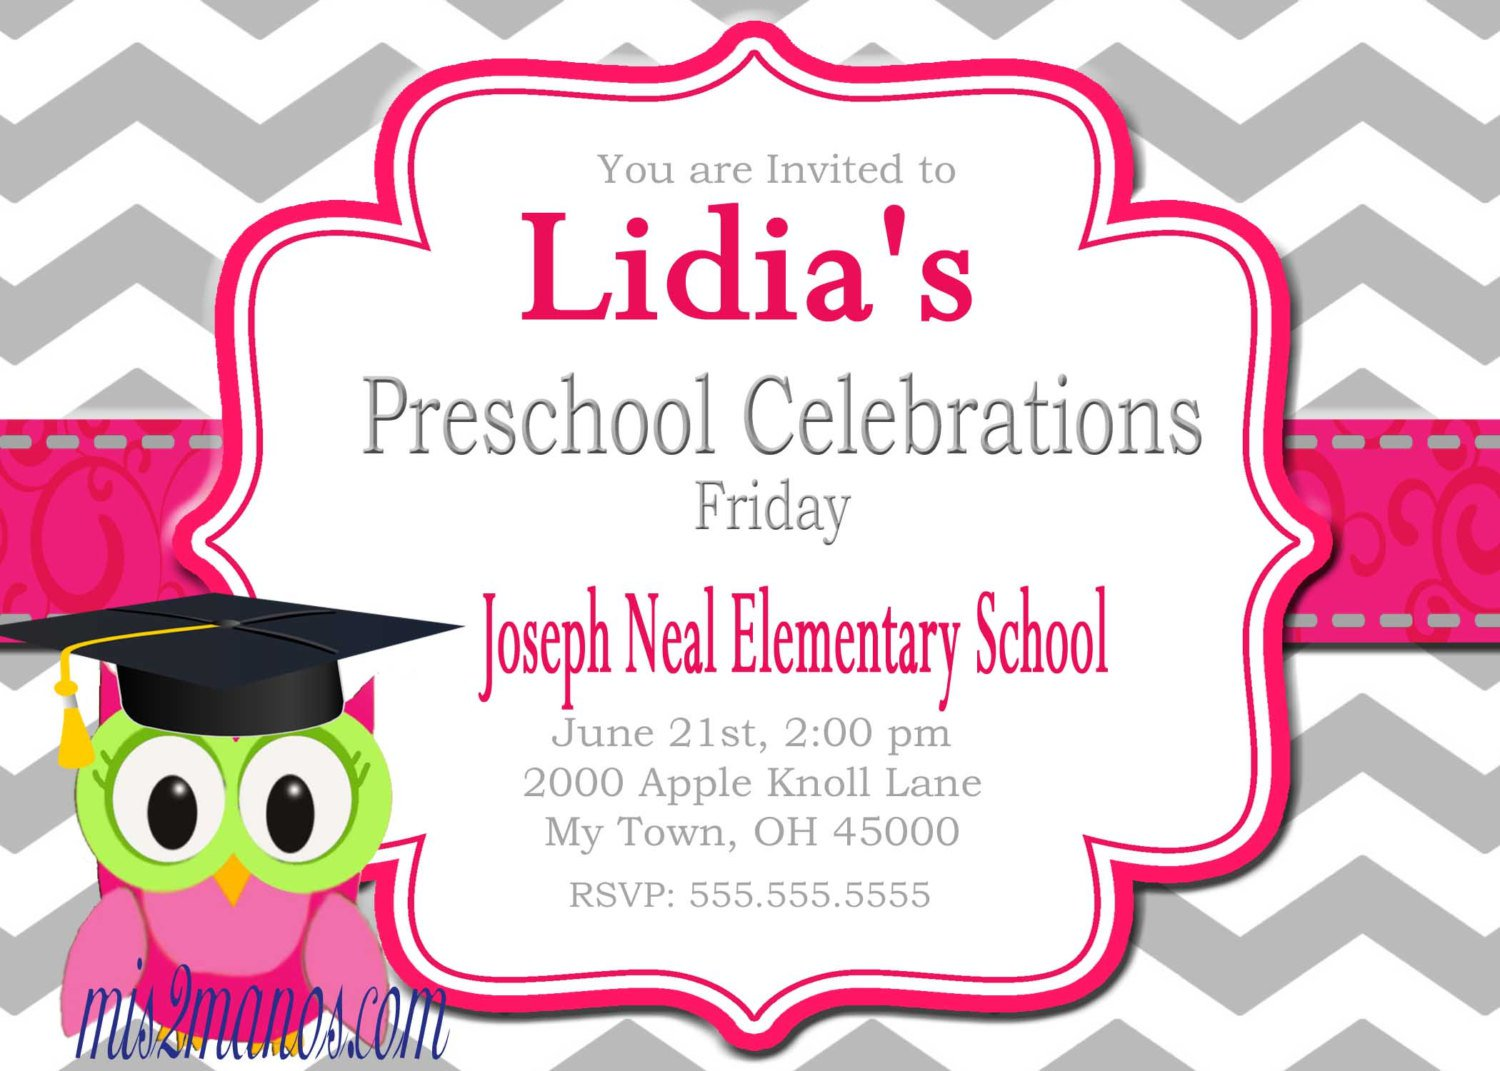 Printable Graduation Invitations For Preschool